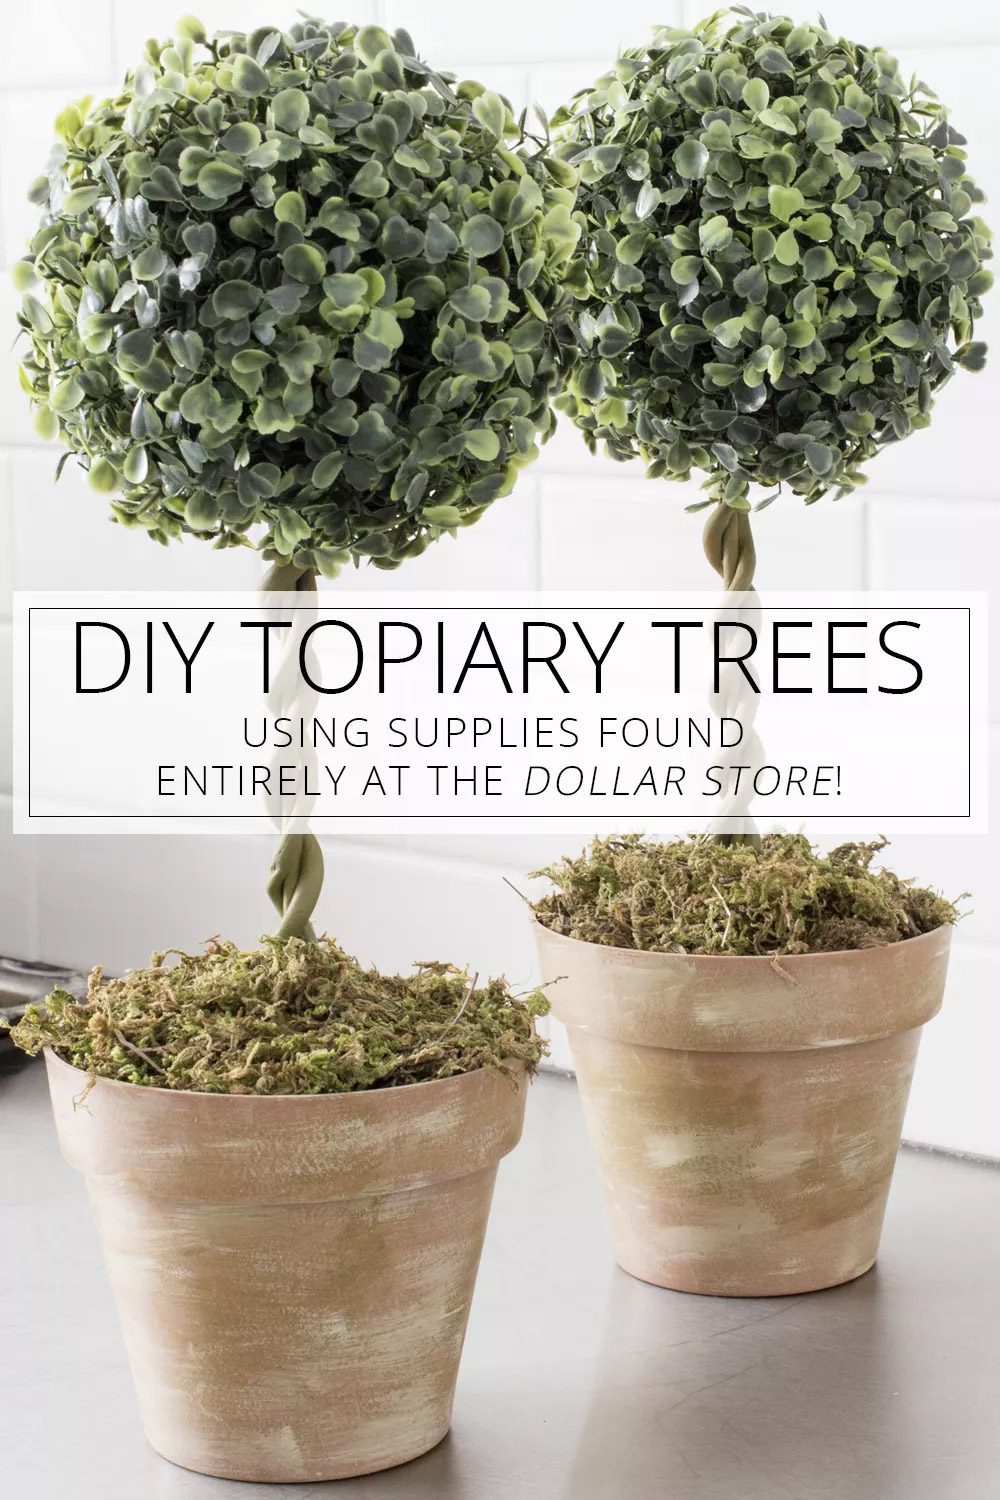 DIY Topiary Trees - Dollar Store Project